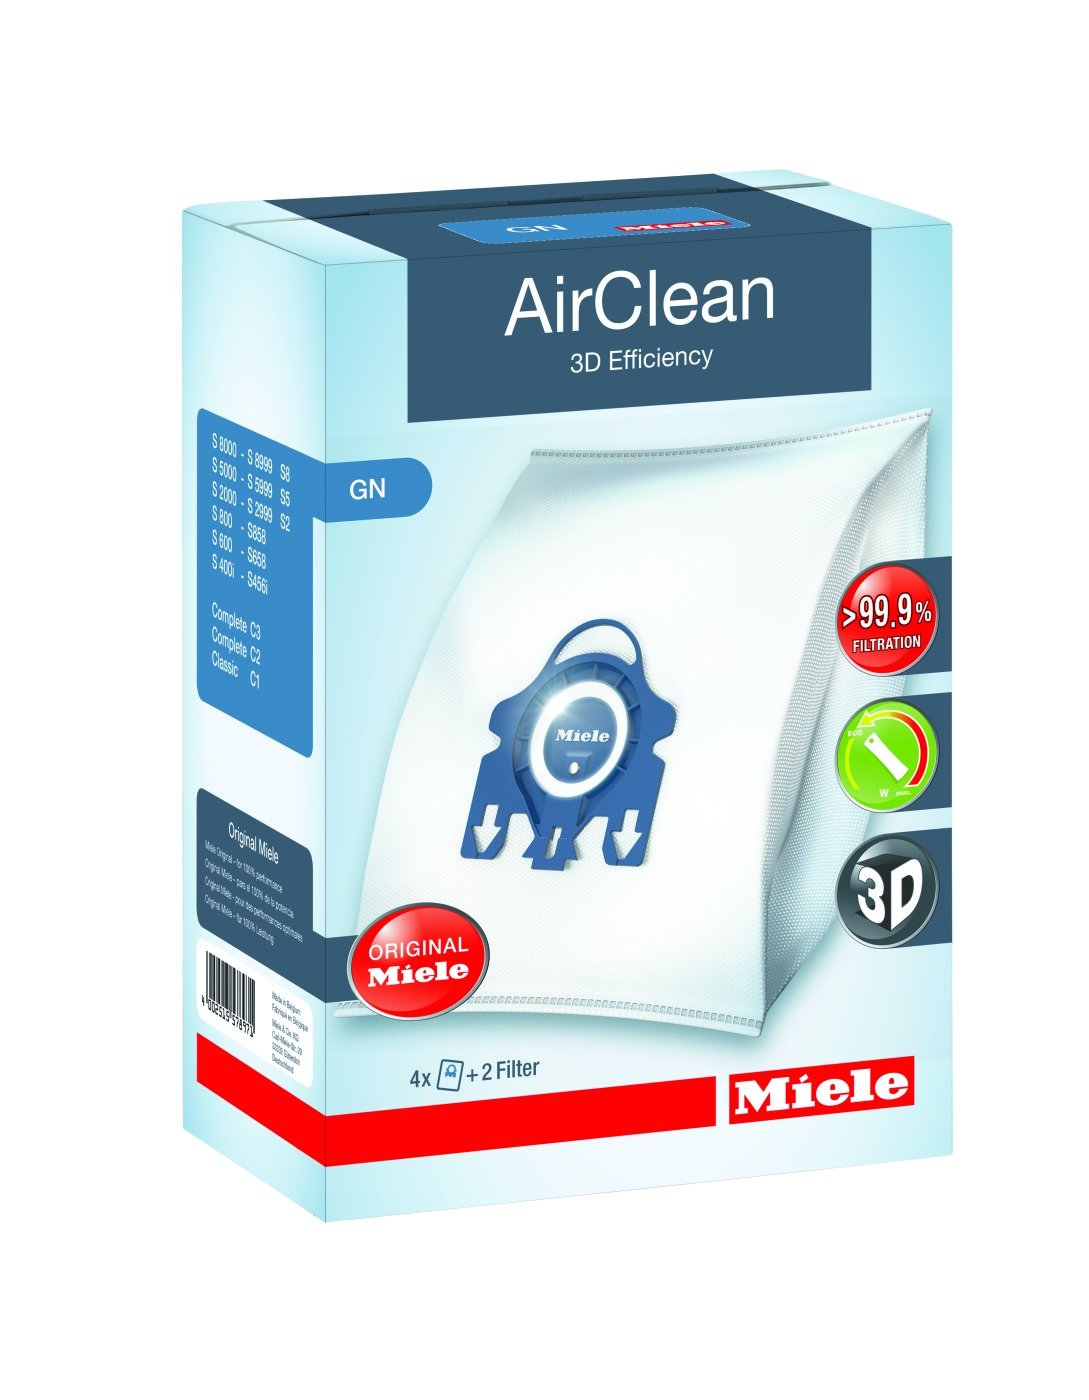 Miele GN AirClean 3D EffIciency FilterBags - 4 Pack